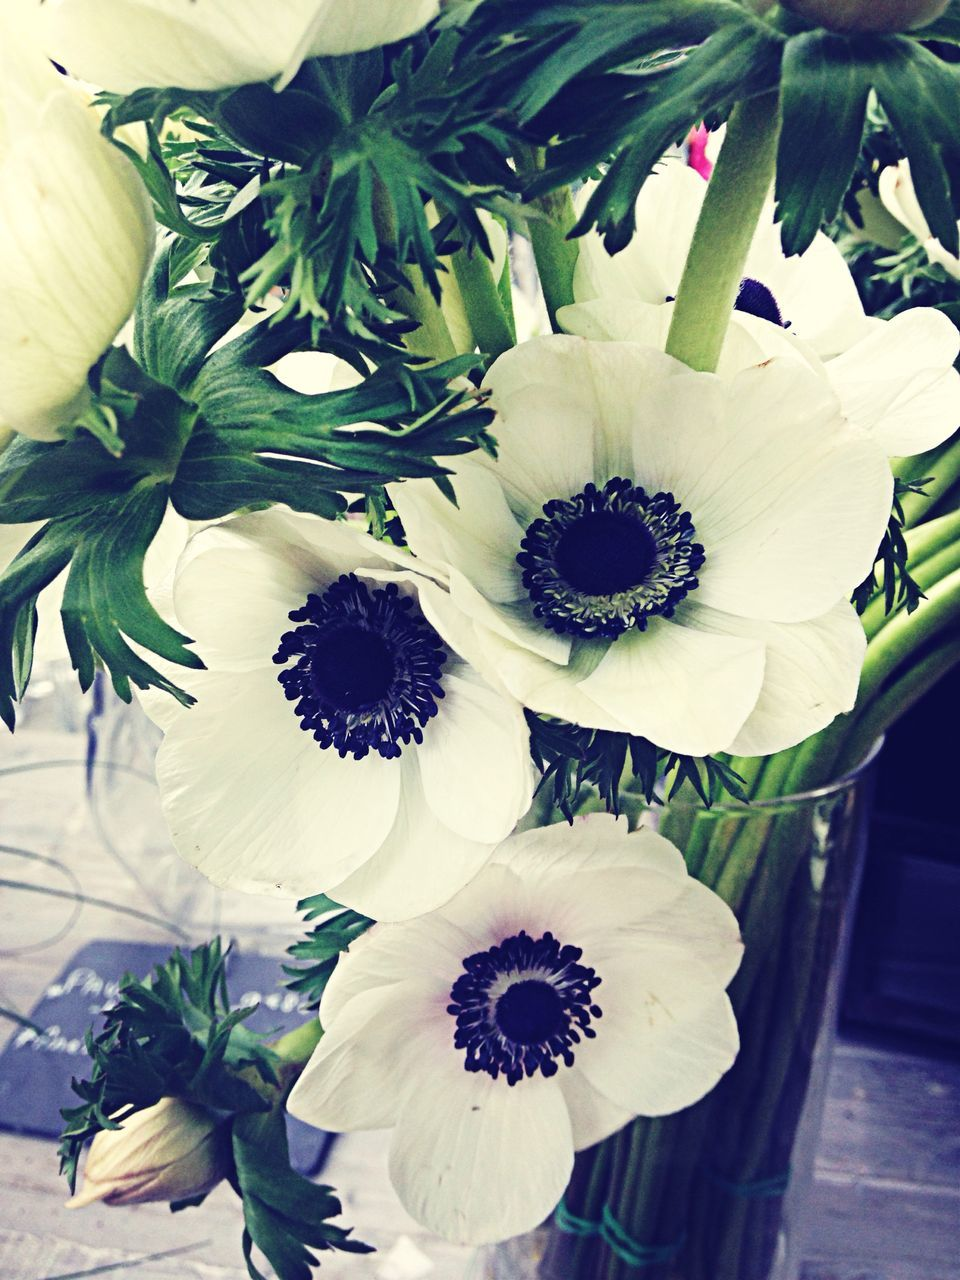 Close-Up Of White Anemone Flowers In Vase